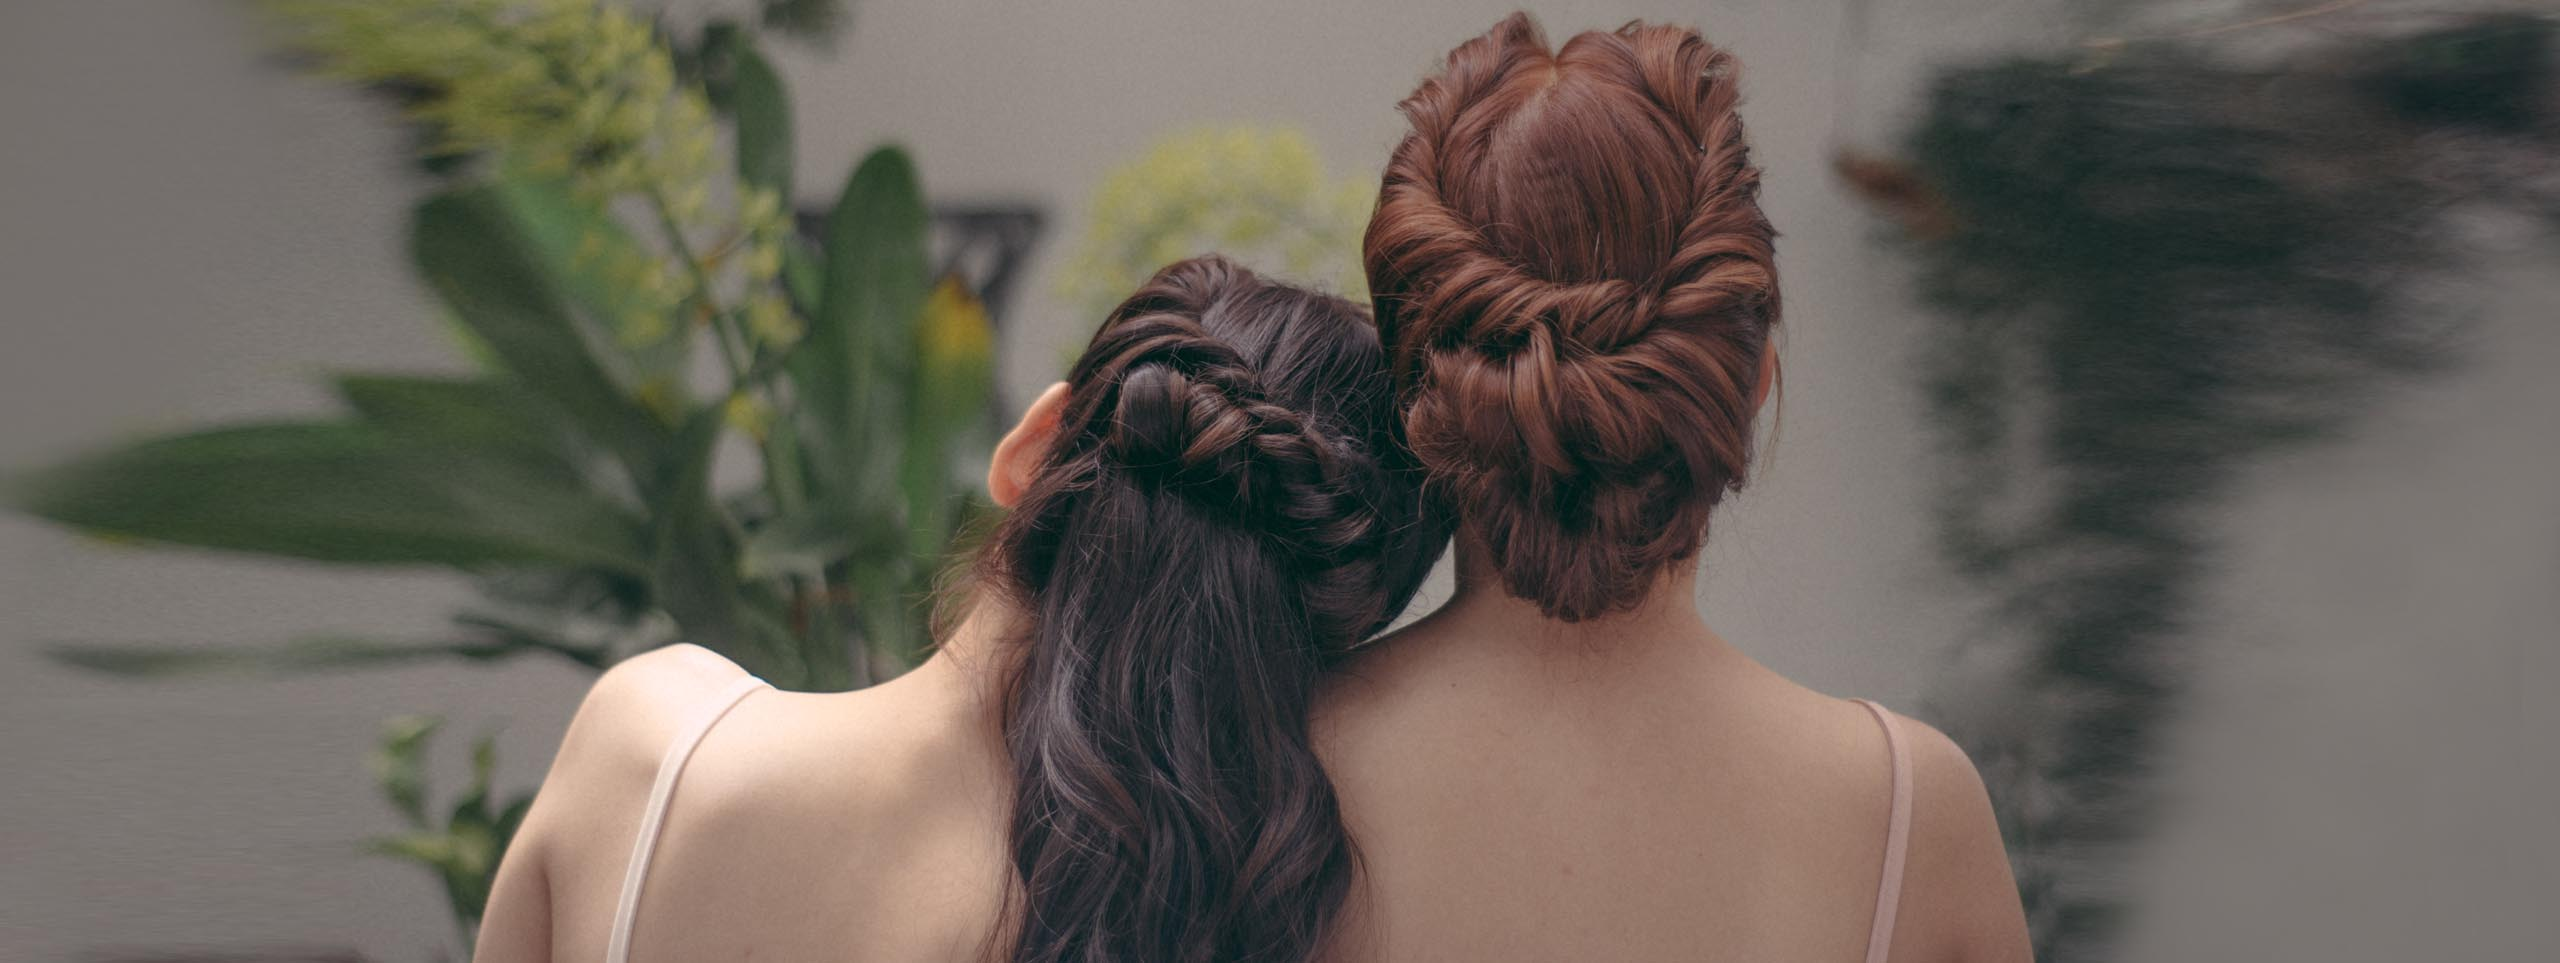 Two women with wedding hair stand with their backs to the camera: One with long, dark, curly hair, and the other with a reddish-brown updo